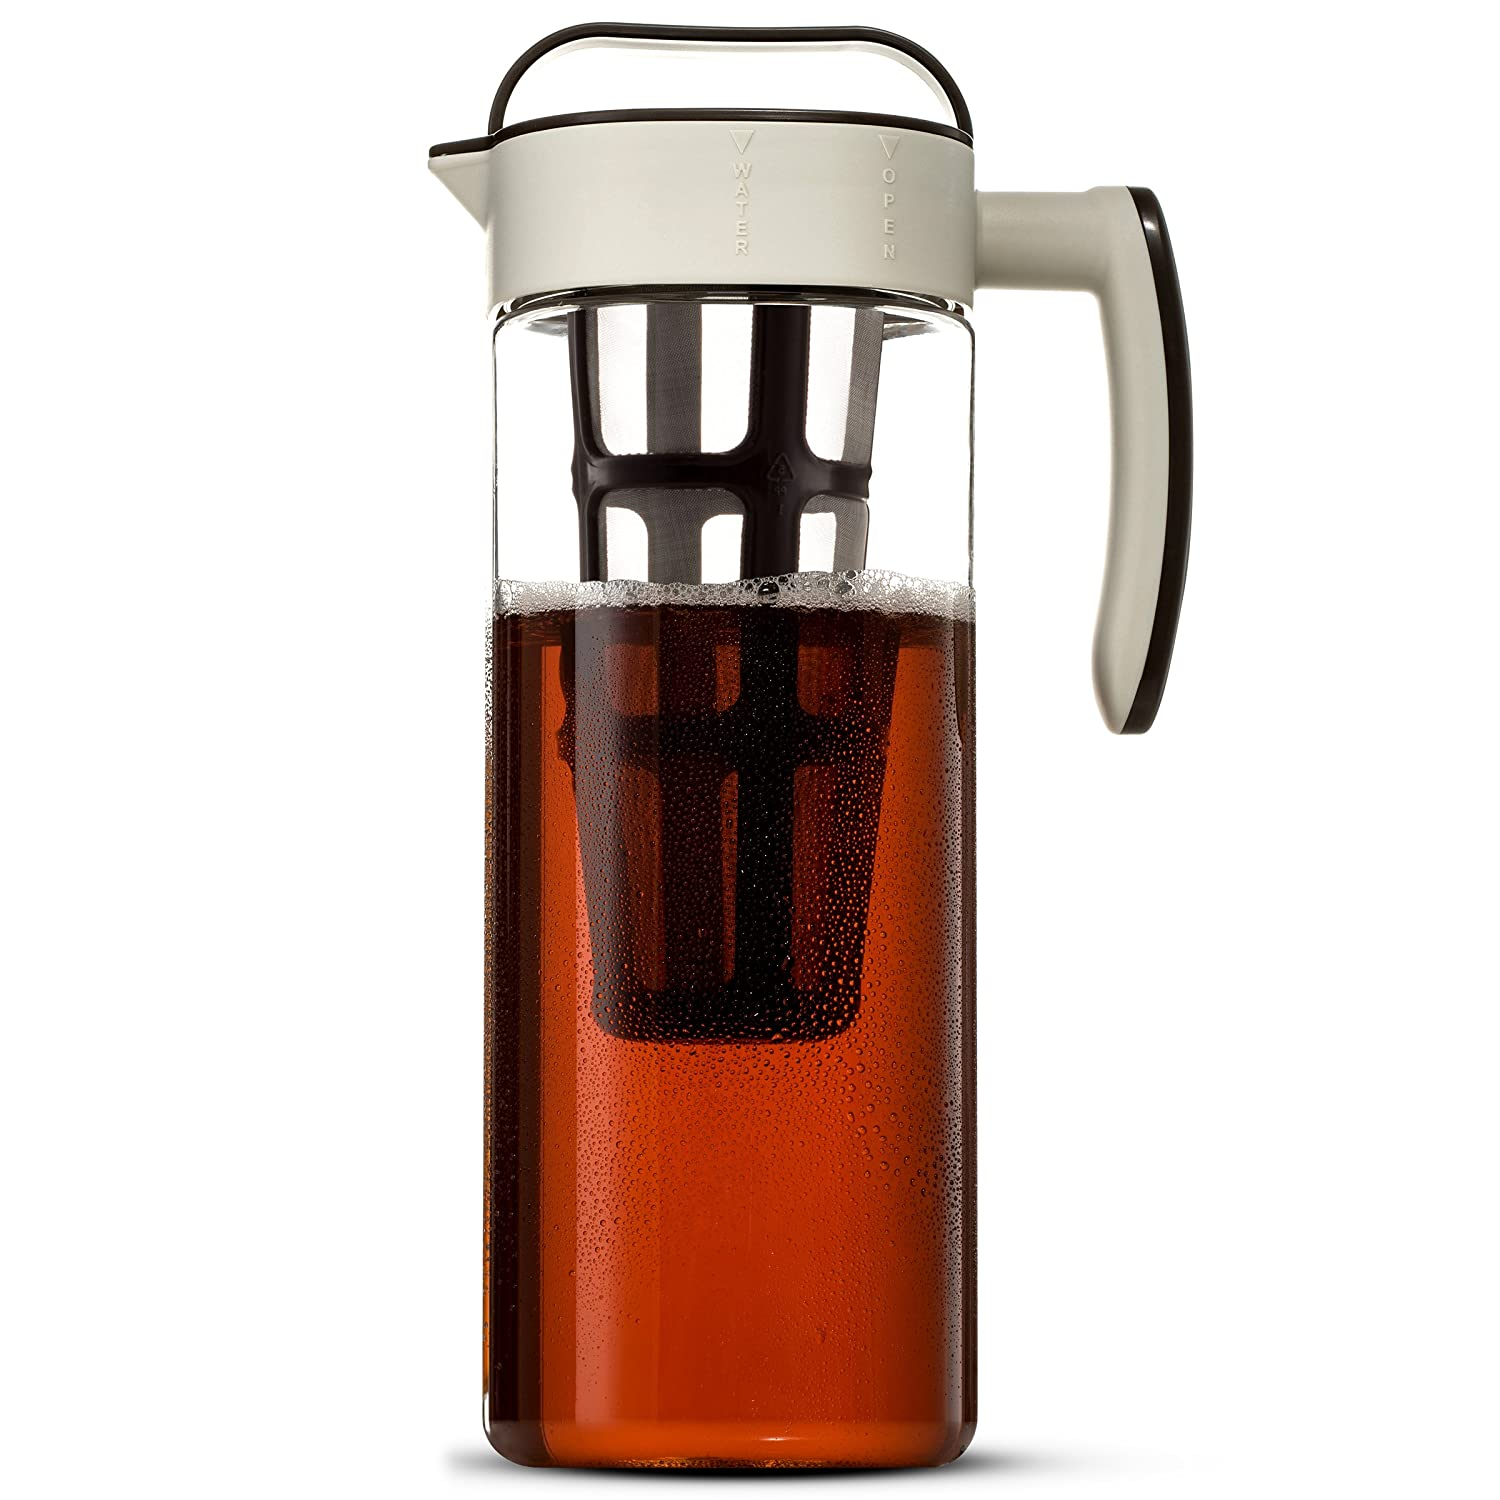 Komax Large Cold Brew Coffee Maker 2 quart (8 Cups) Tritan Pitcher - With Stainless Steel Mesh Infuser - Air Tight Seal, Space Saving Square Design For Concentrated Hot or Cold Beverages